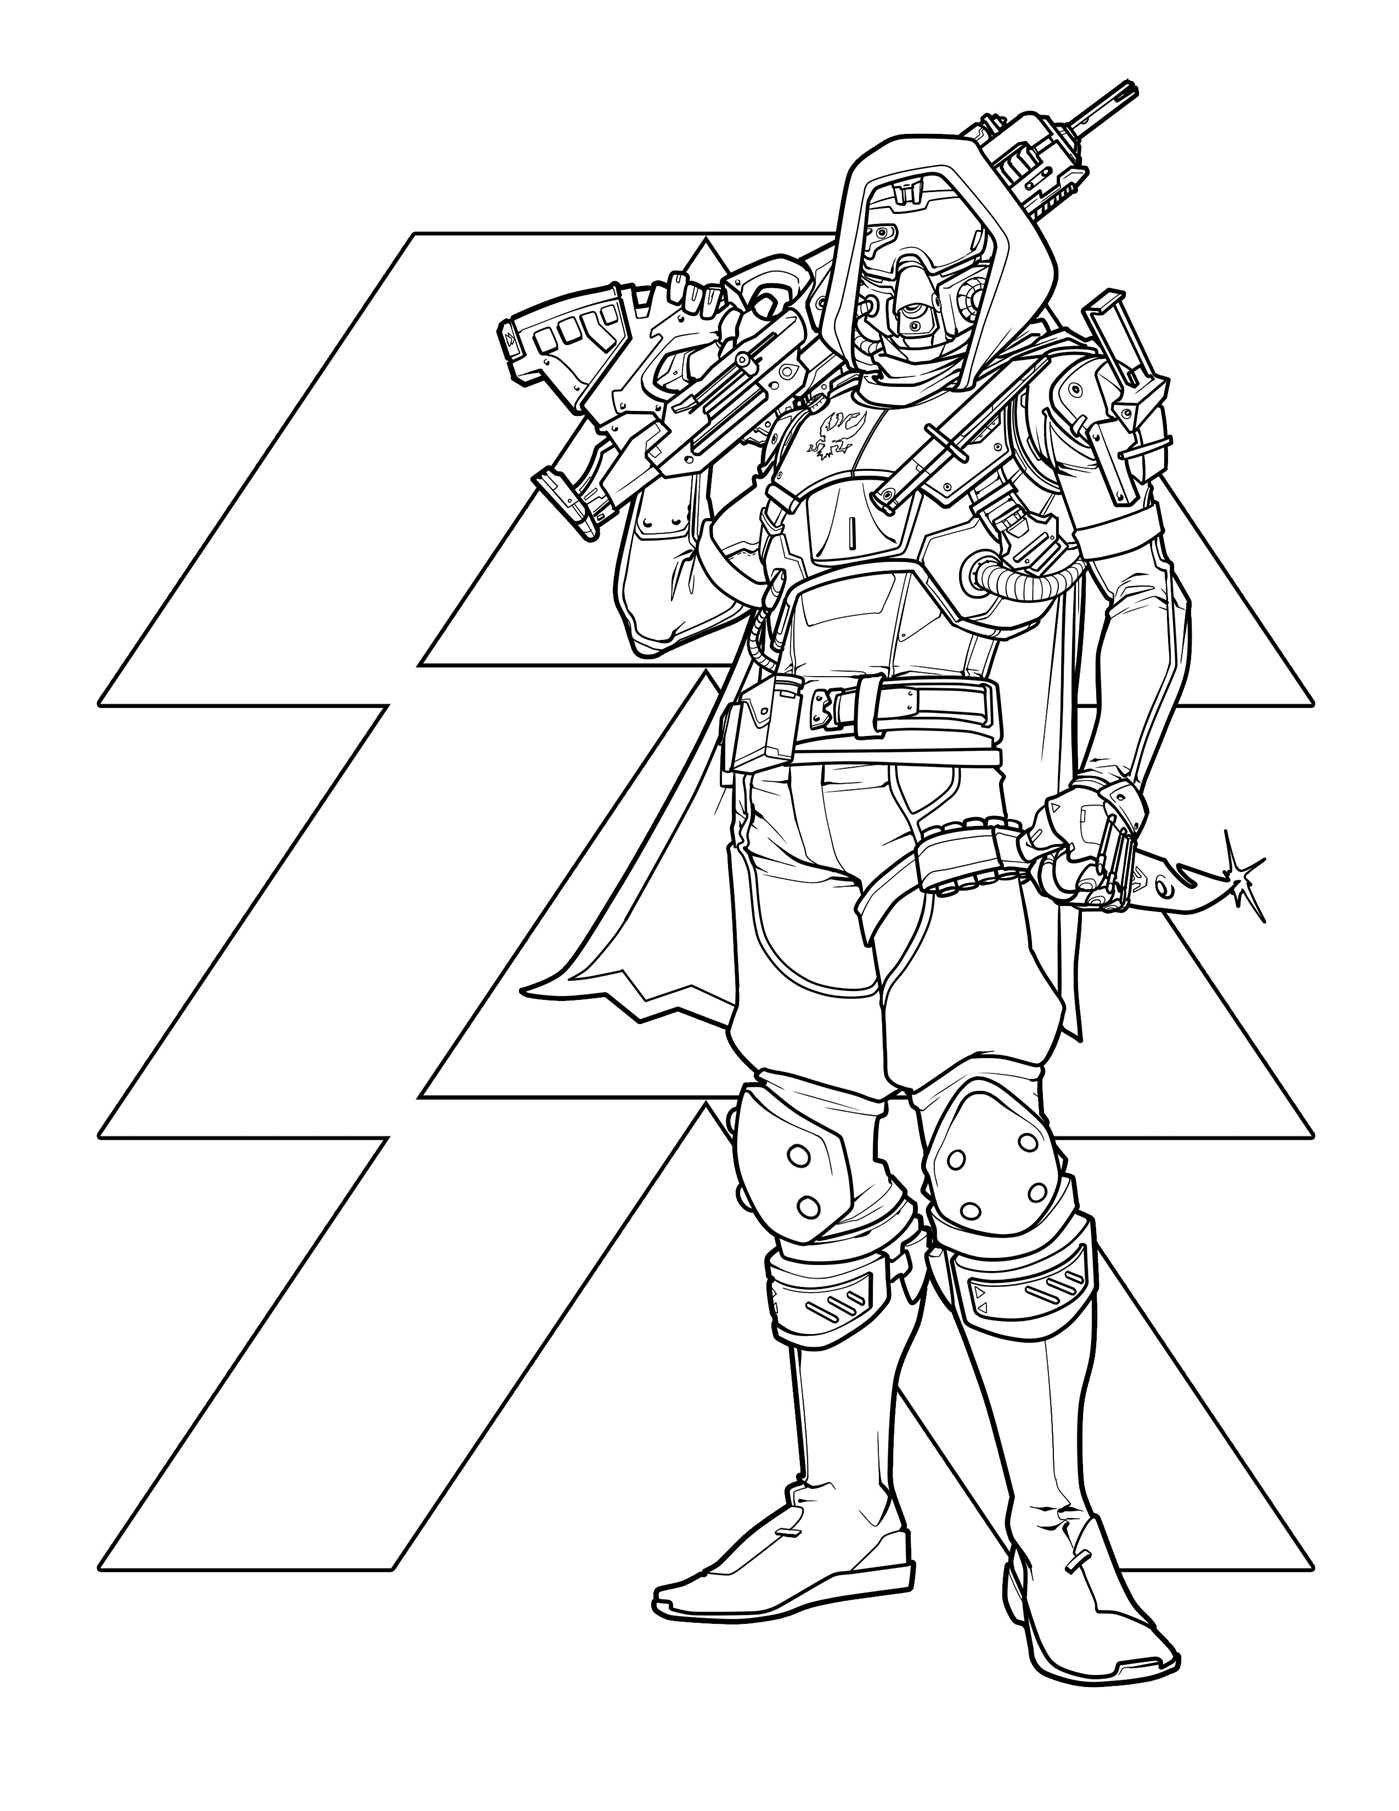 Amazon.com: Destiny: The Official Coloring Book (12 ...